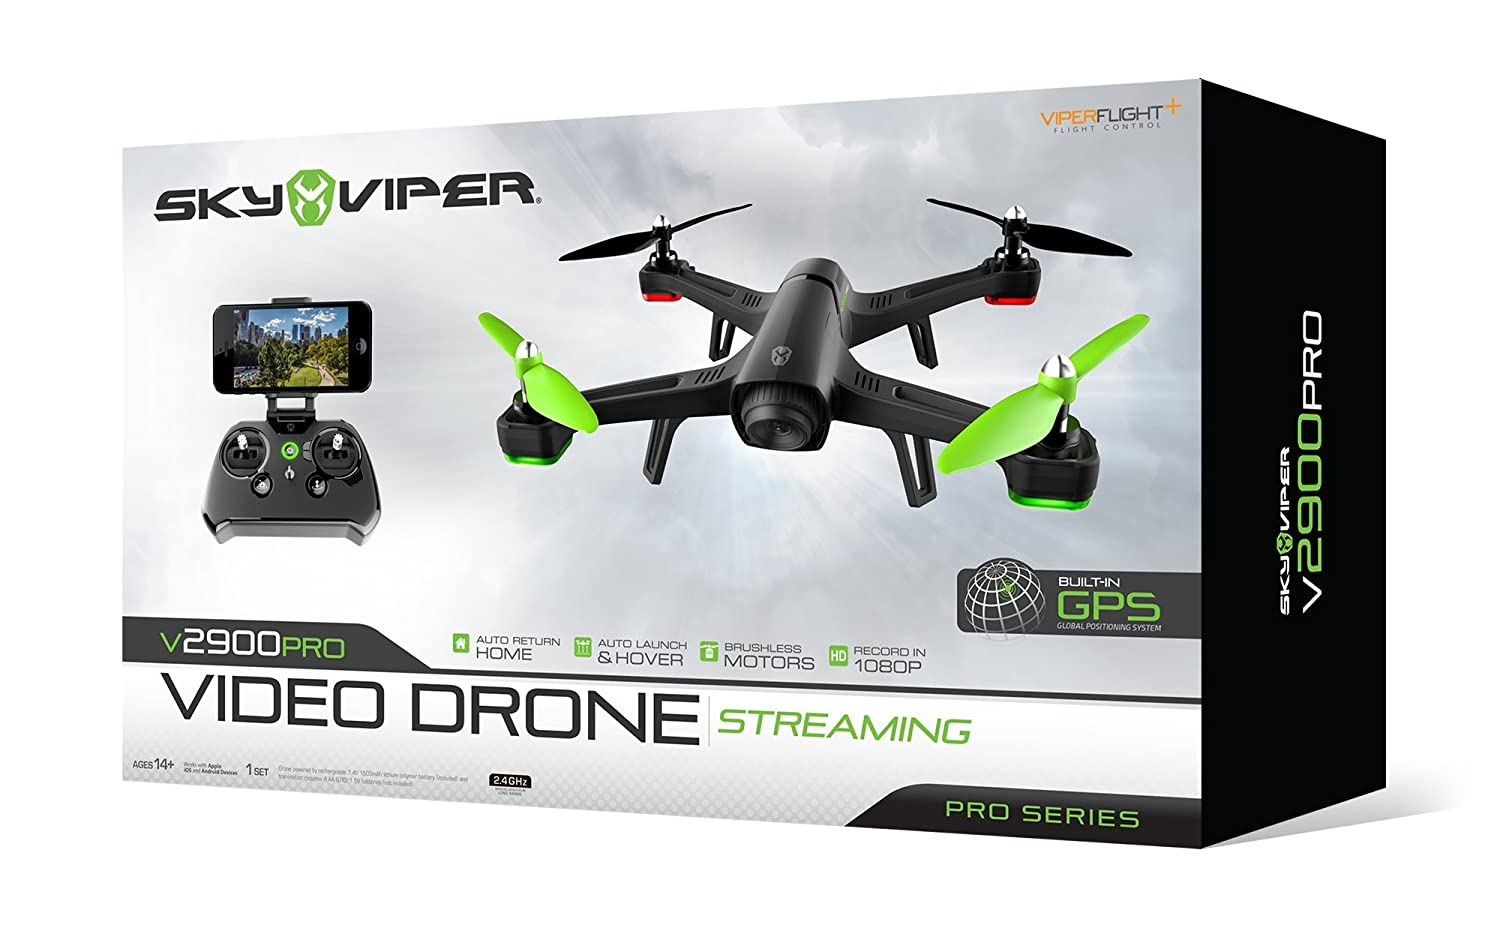 Skyrocket Toys Sky Viper v2900PRO Streaming Video Drone - Pro ...